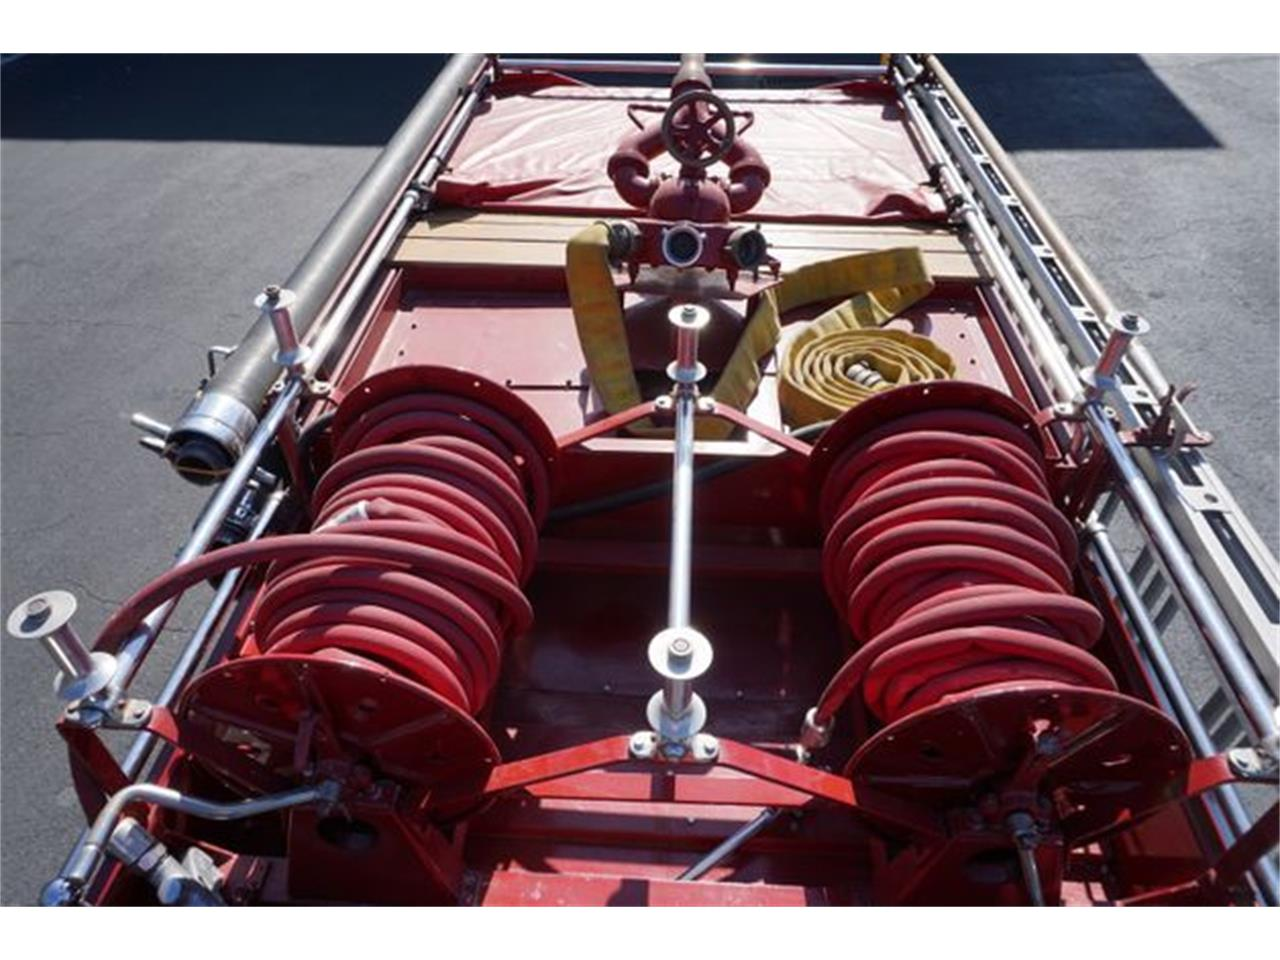 Large Picture of '53 American LaFrance Fire Engine located in Boca Raton  Florida - $69,000.00 - O4GG